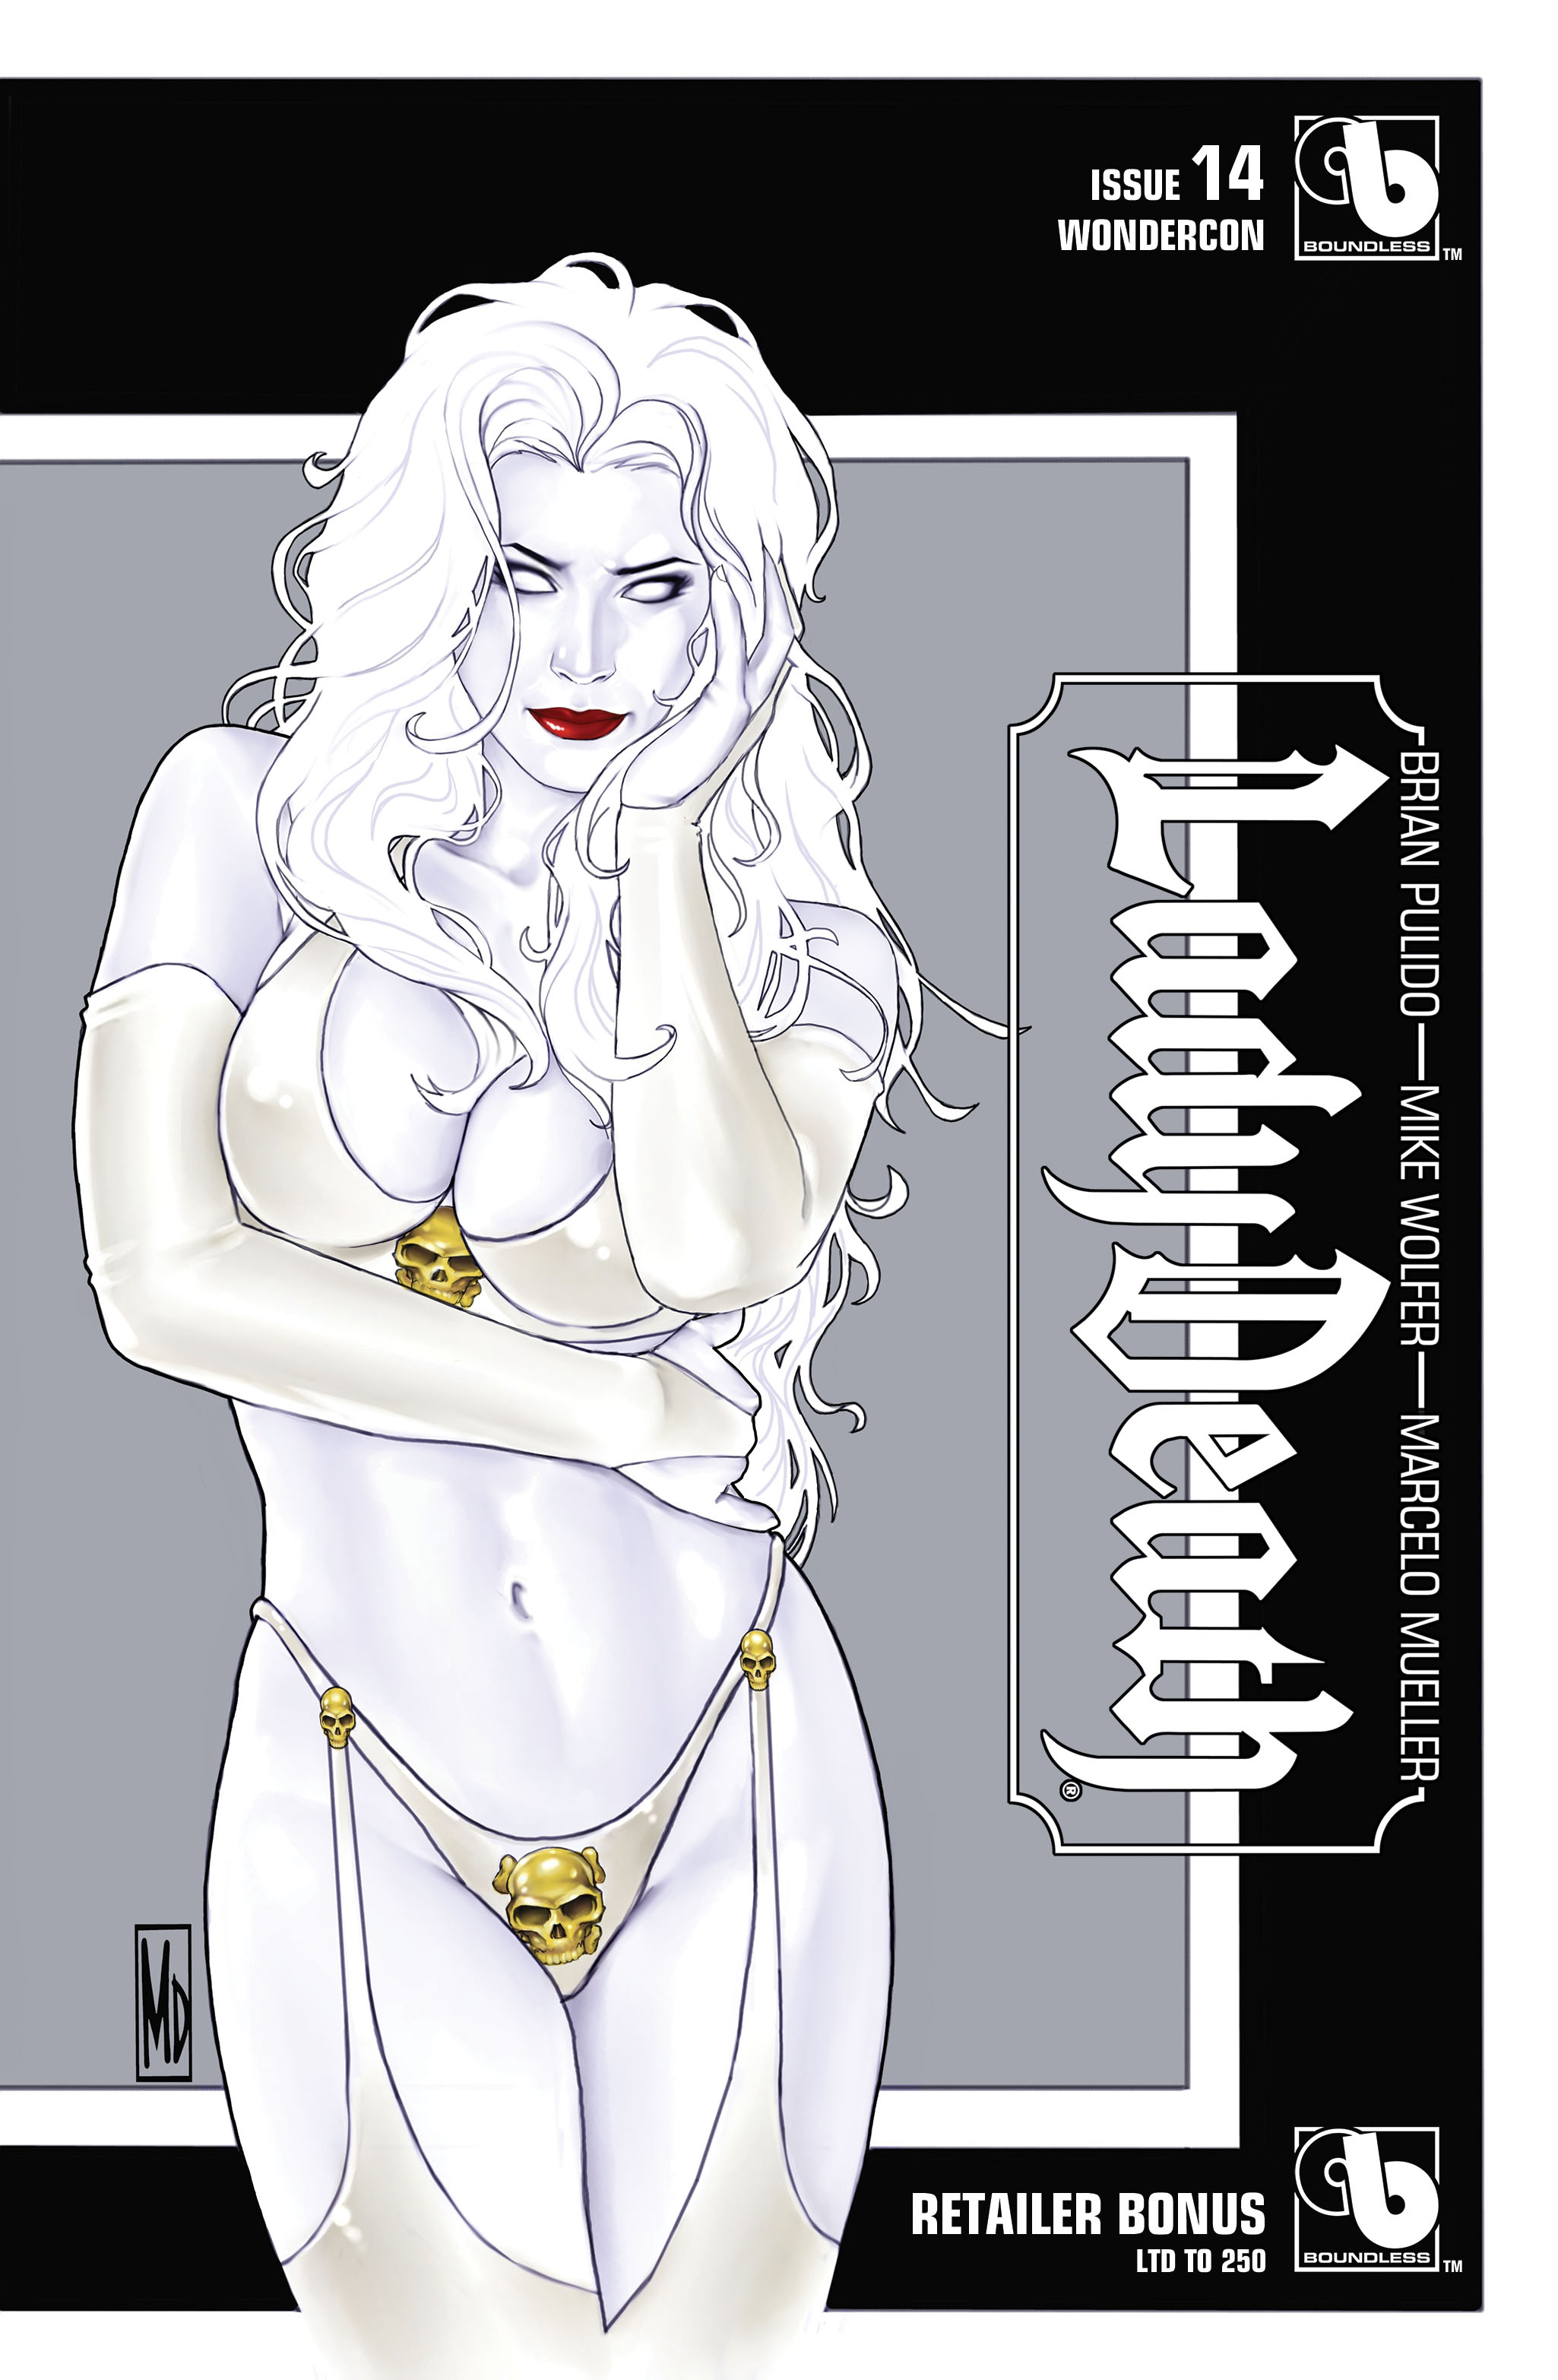 LADY DEATH (ONGOING) #14 WONDERCON RETAILER BONUS (MR)